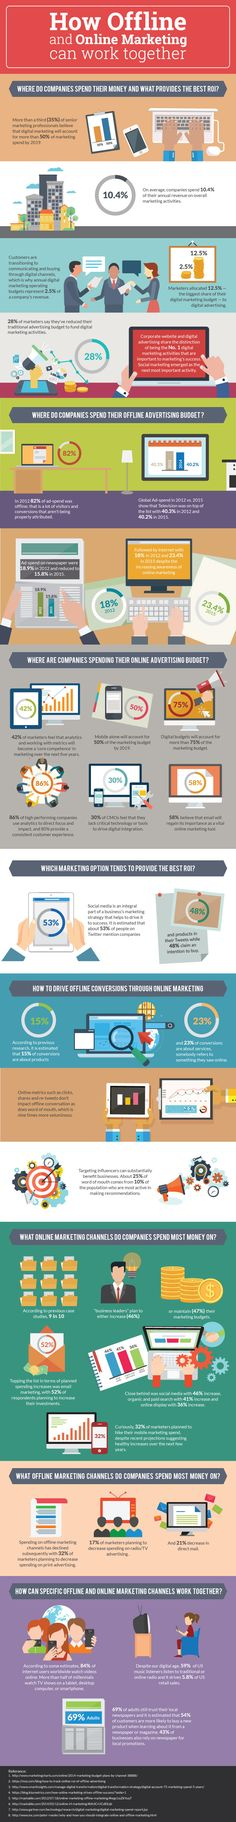 How Online & Offline Marketing Can Work Together [Infographic